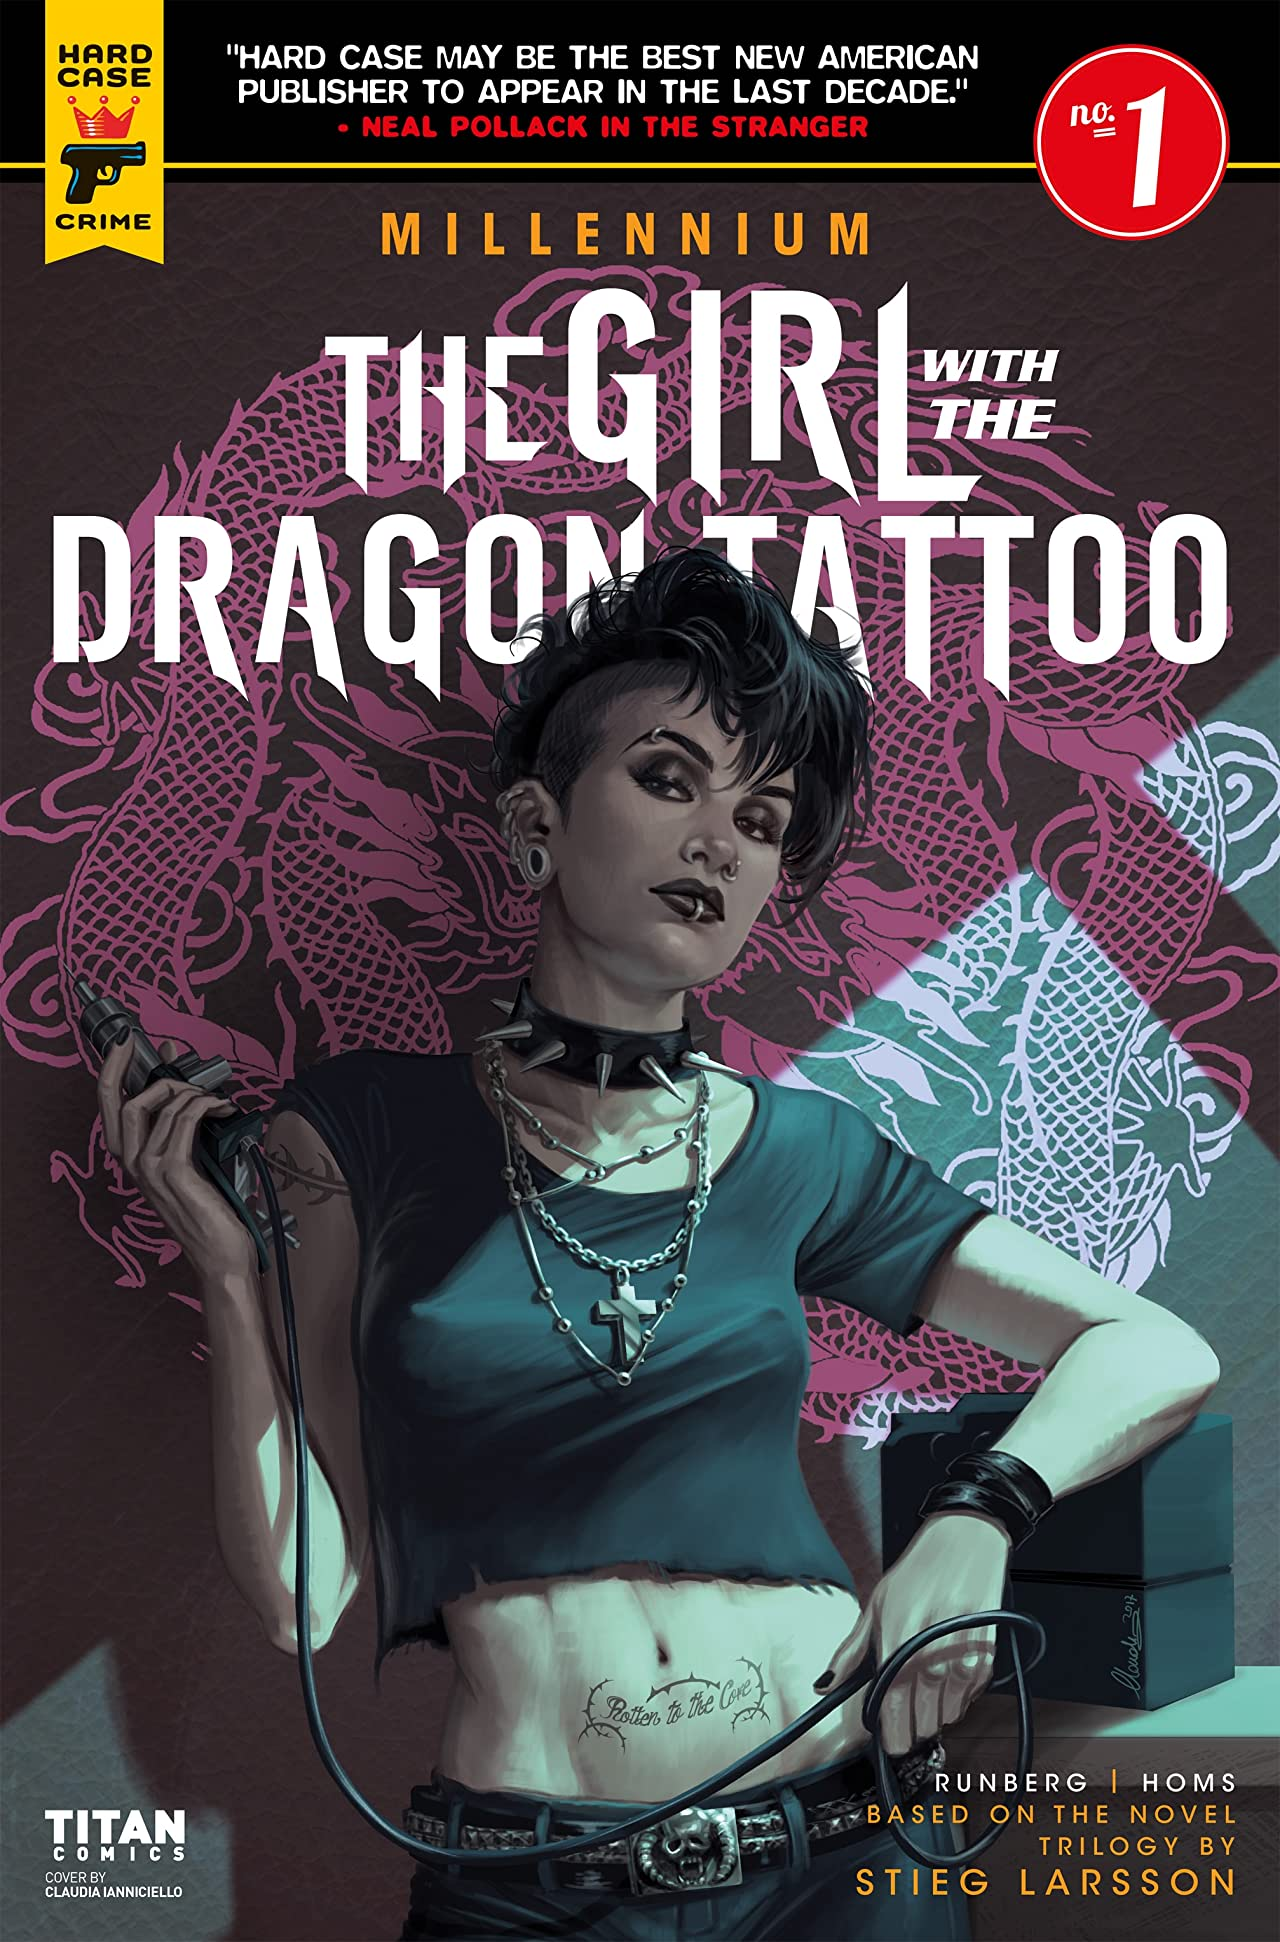 Millennium: The Girl with the Dragon Tattoo #1